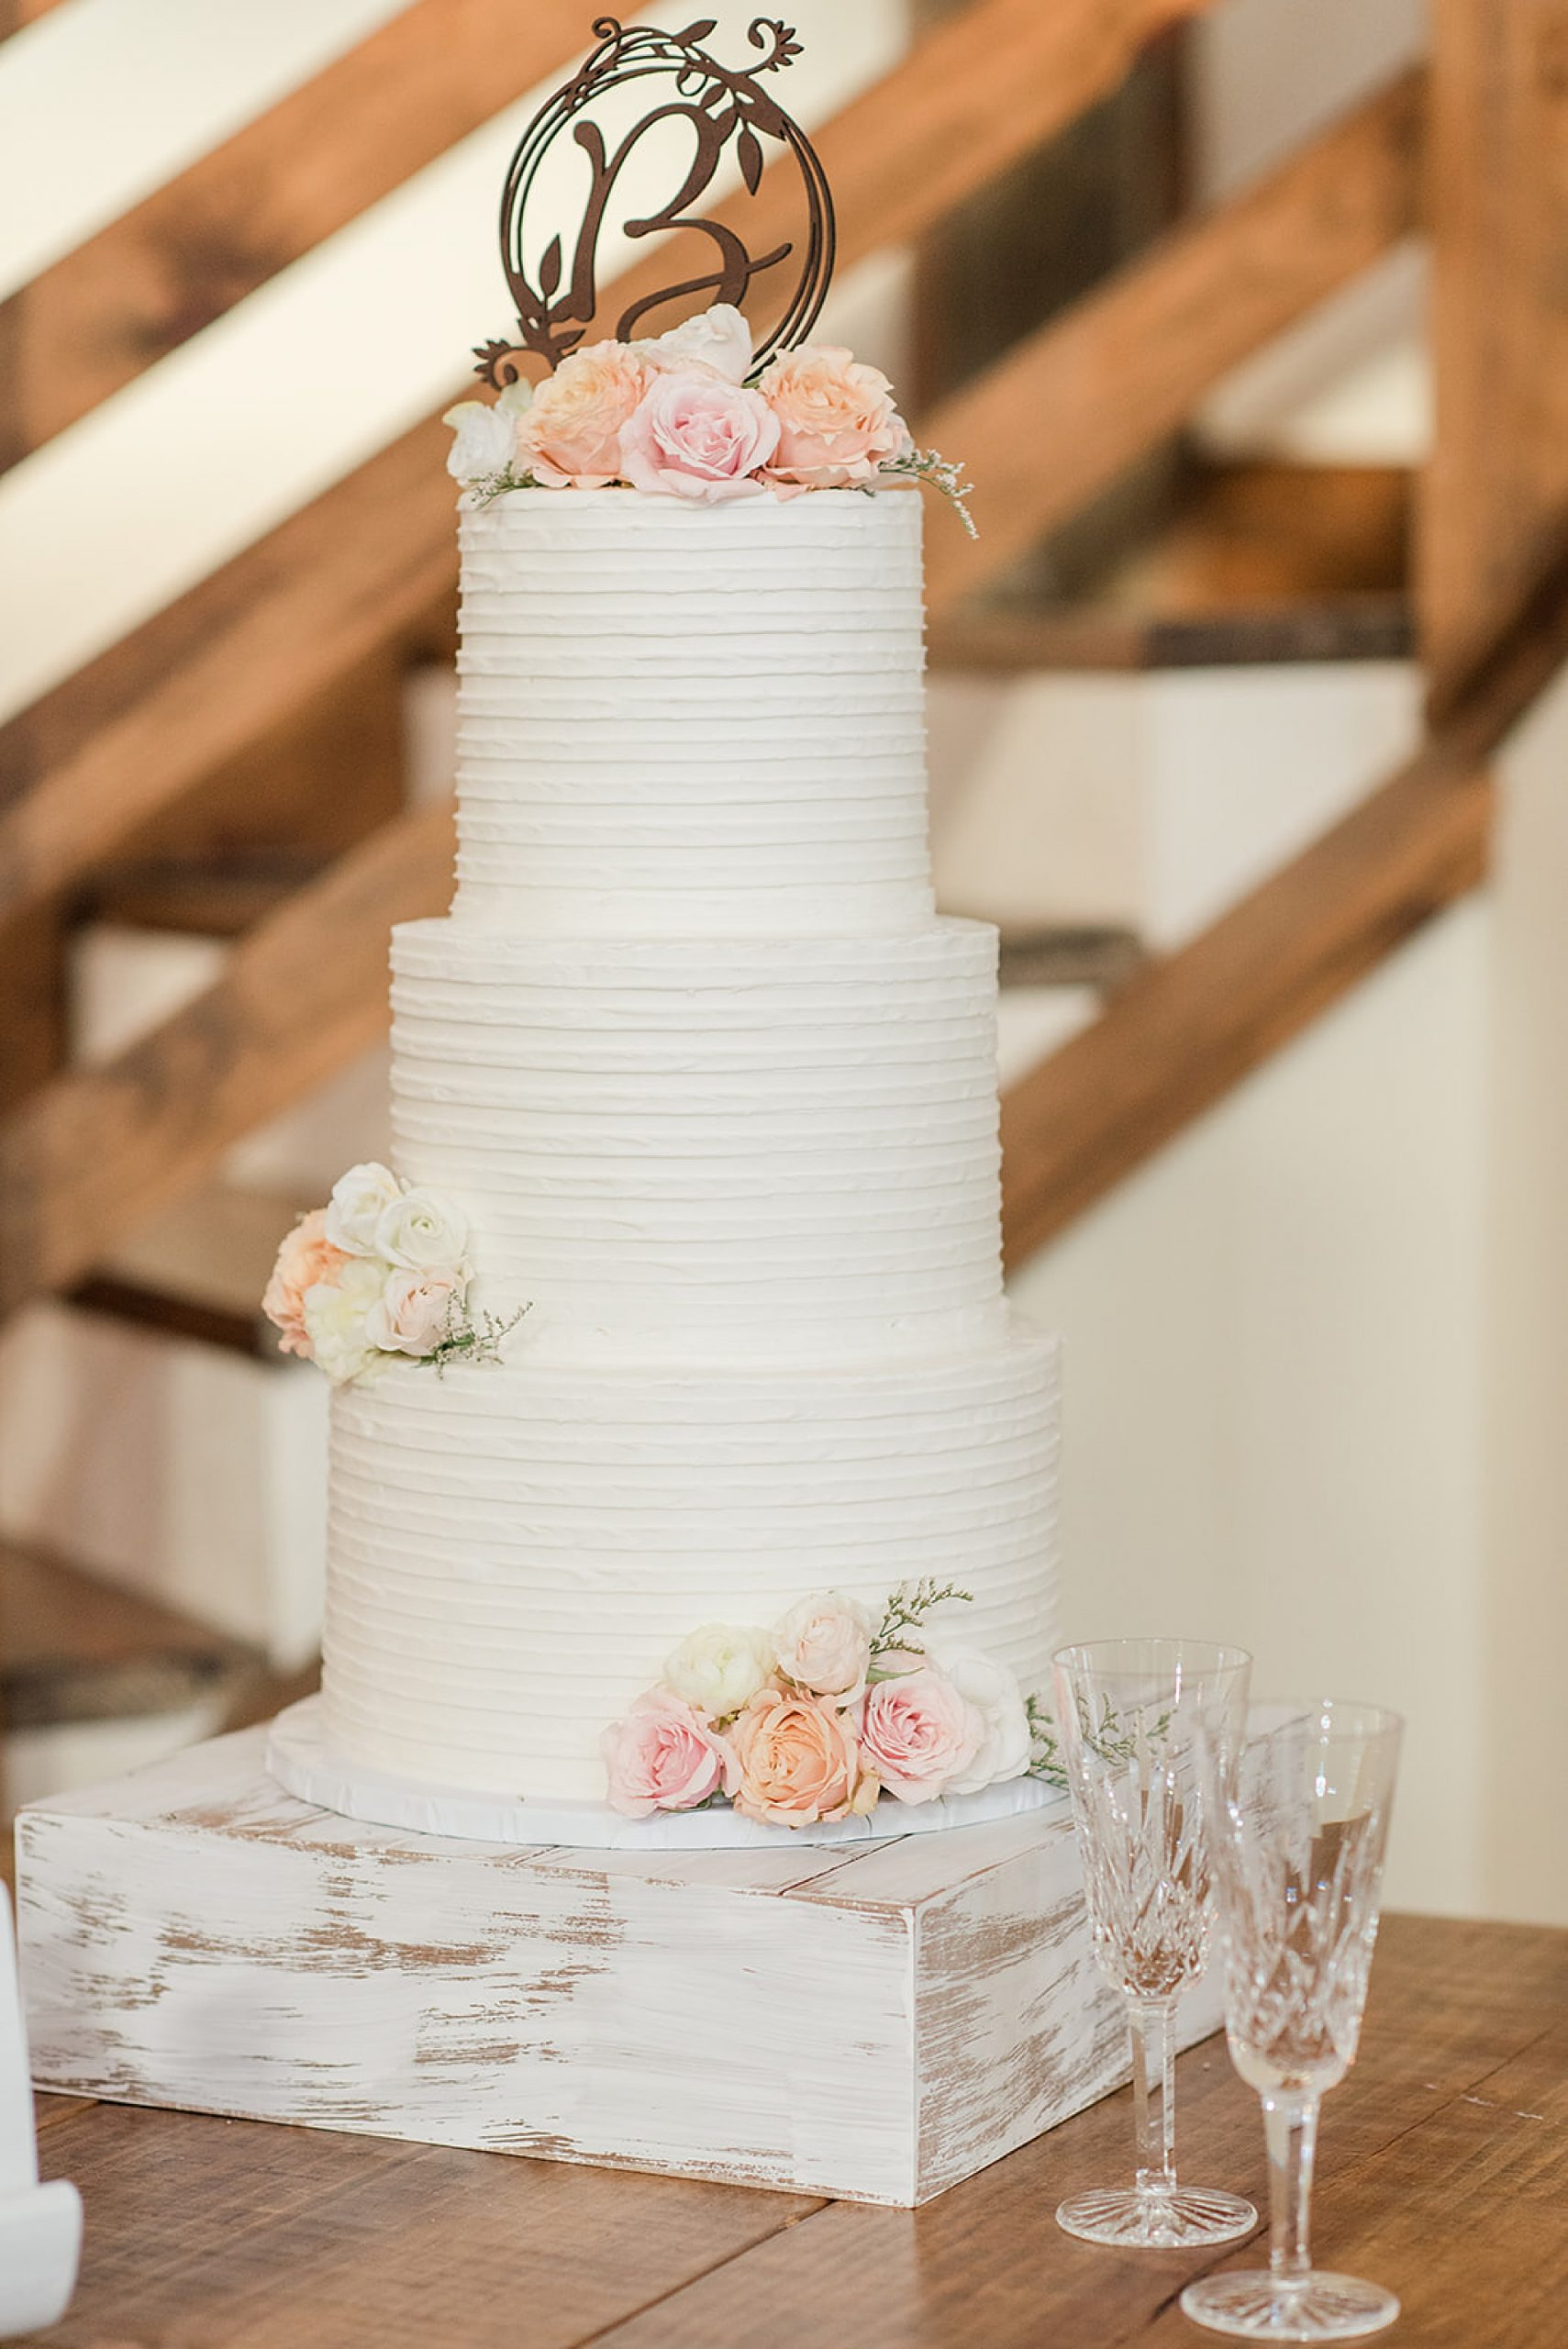 tiered wedding cake with pastel flowers